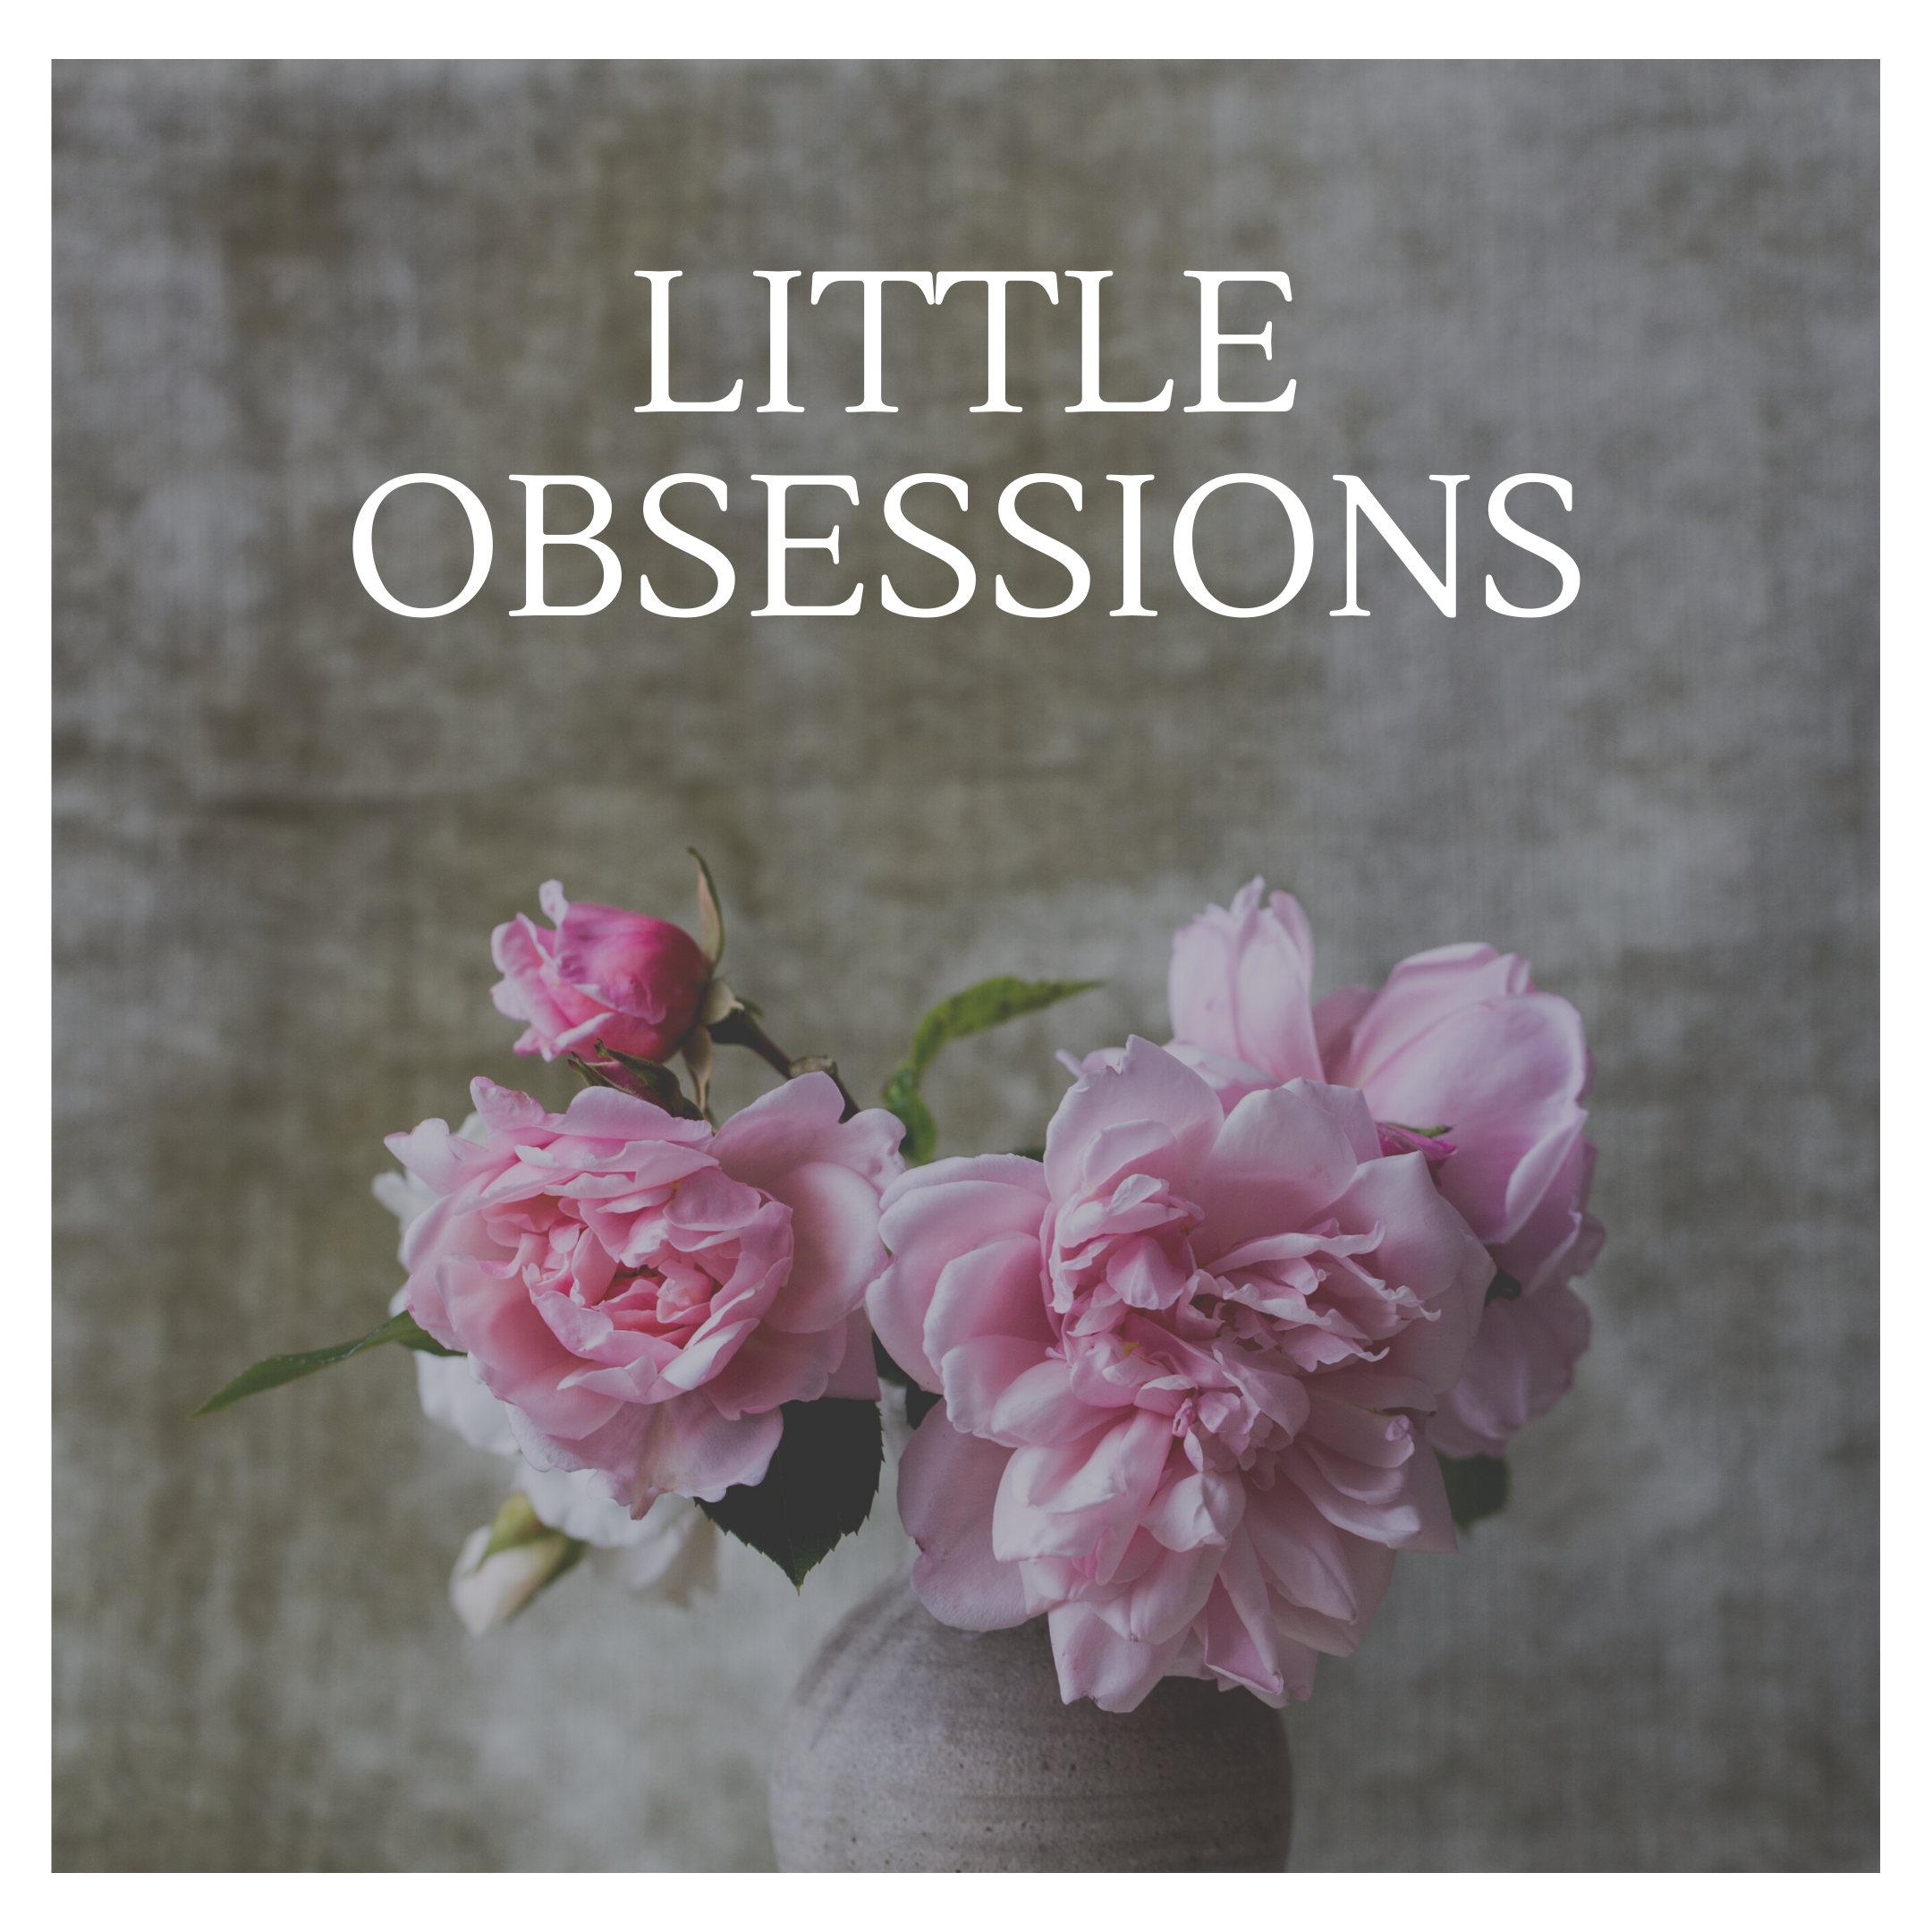 Little Obessions